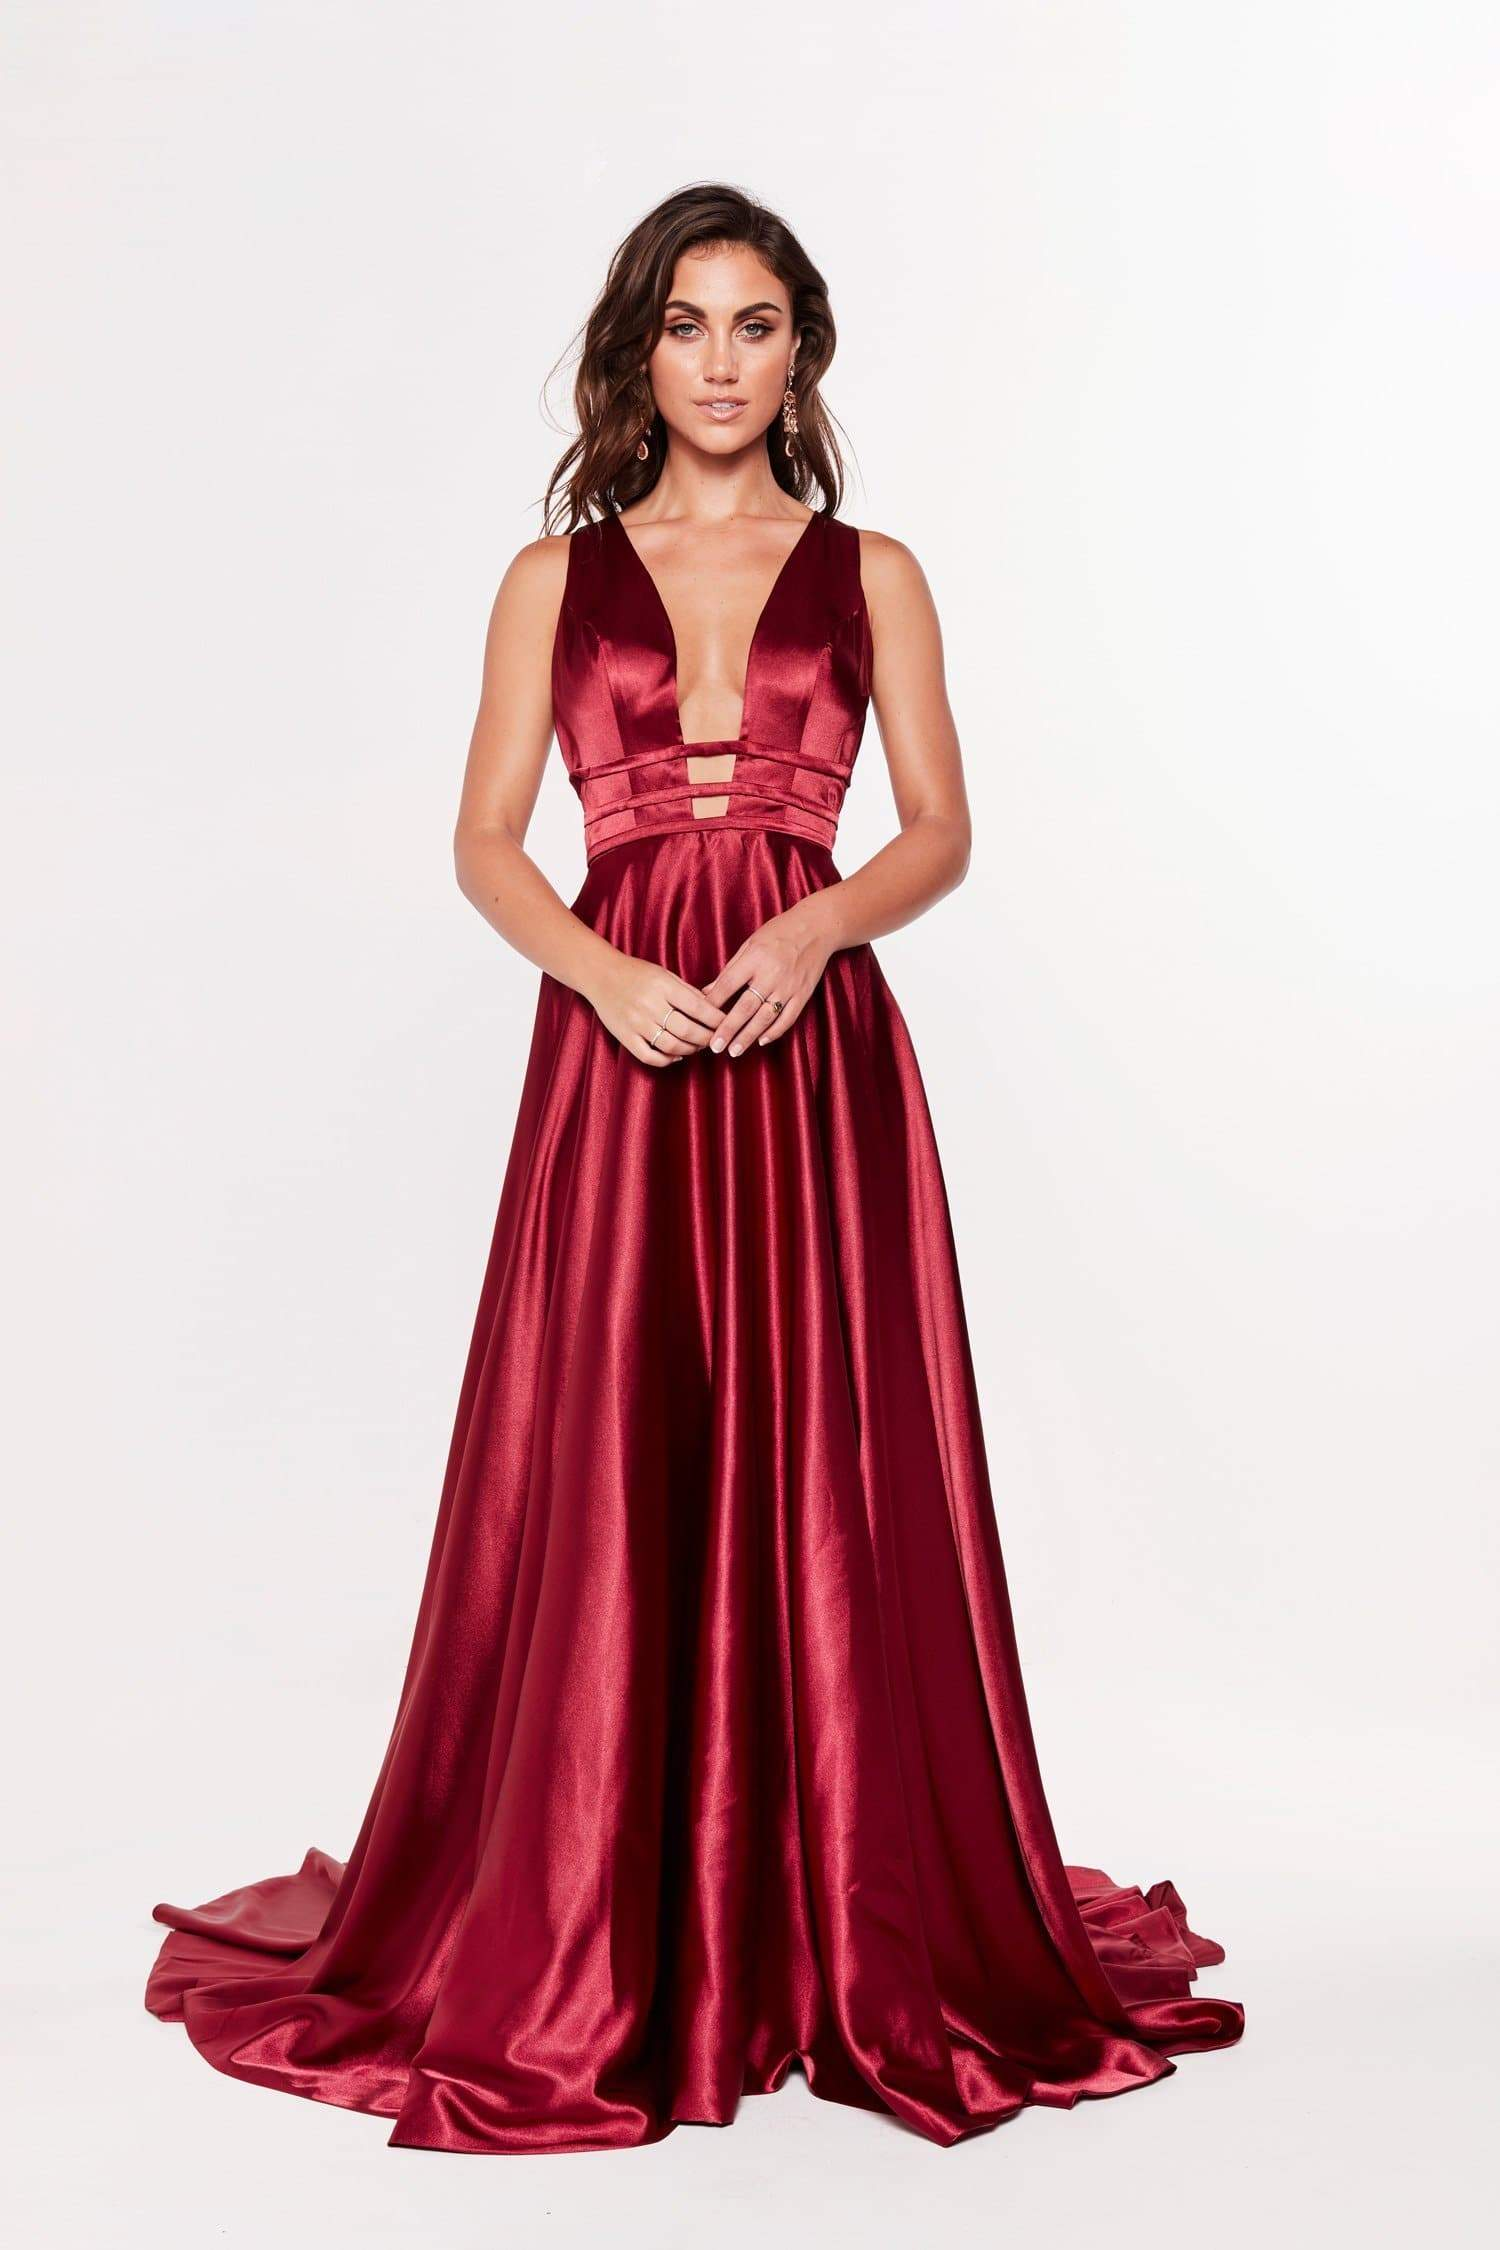 A&N Fleta - Burgundy Satin Gown with Plunging Neckline and Back Detail